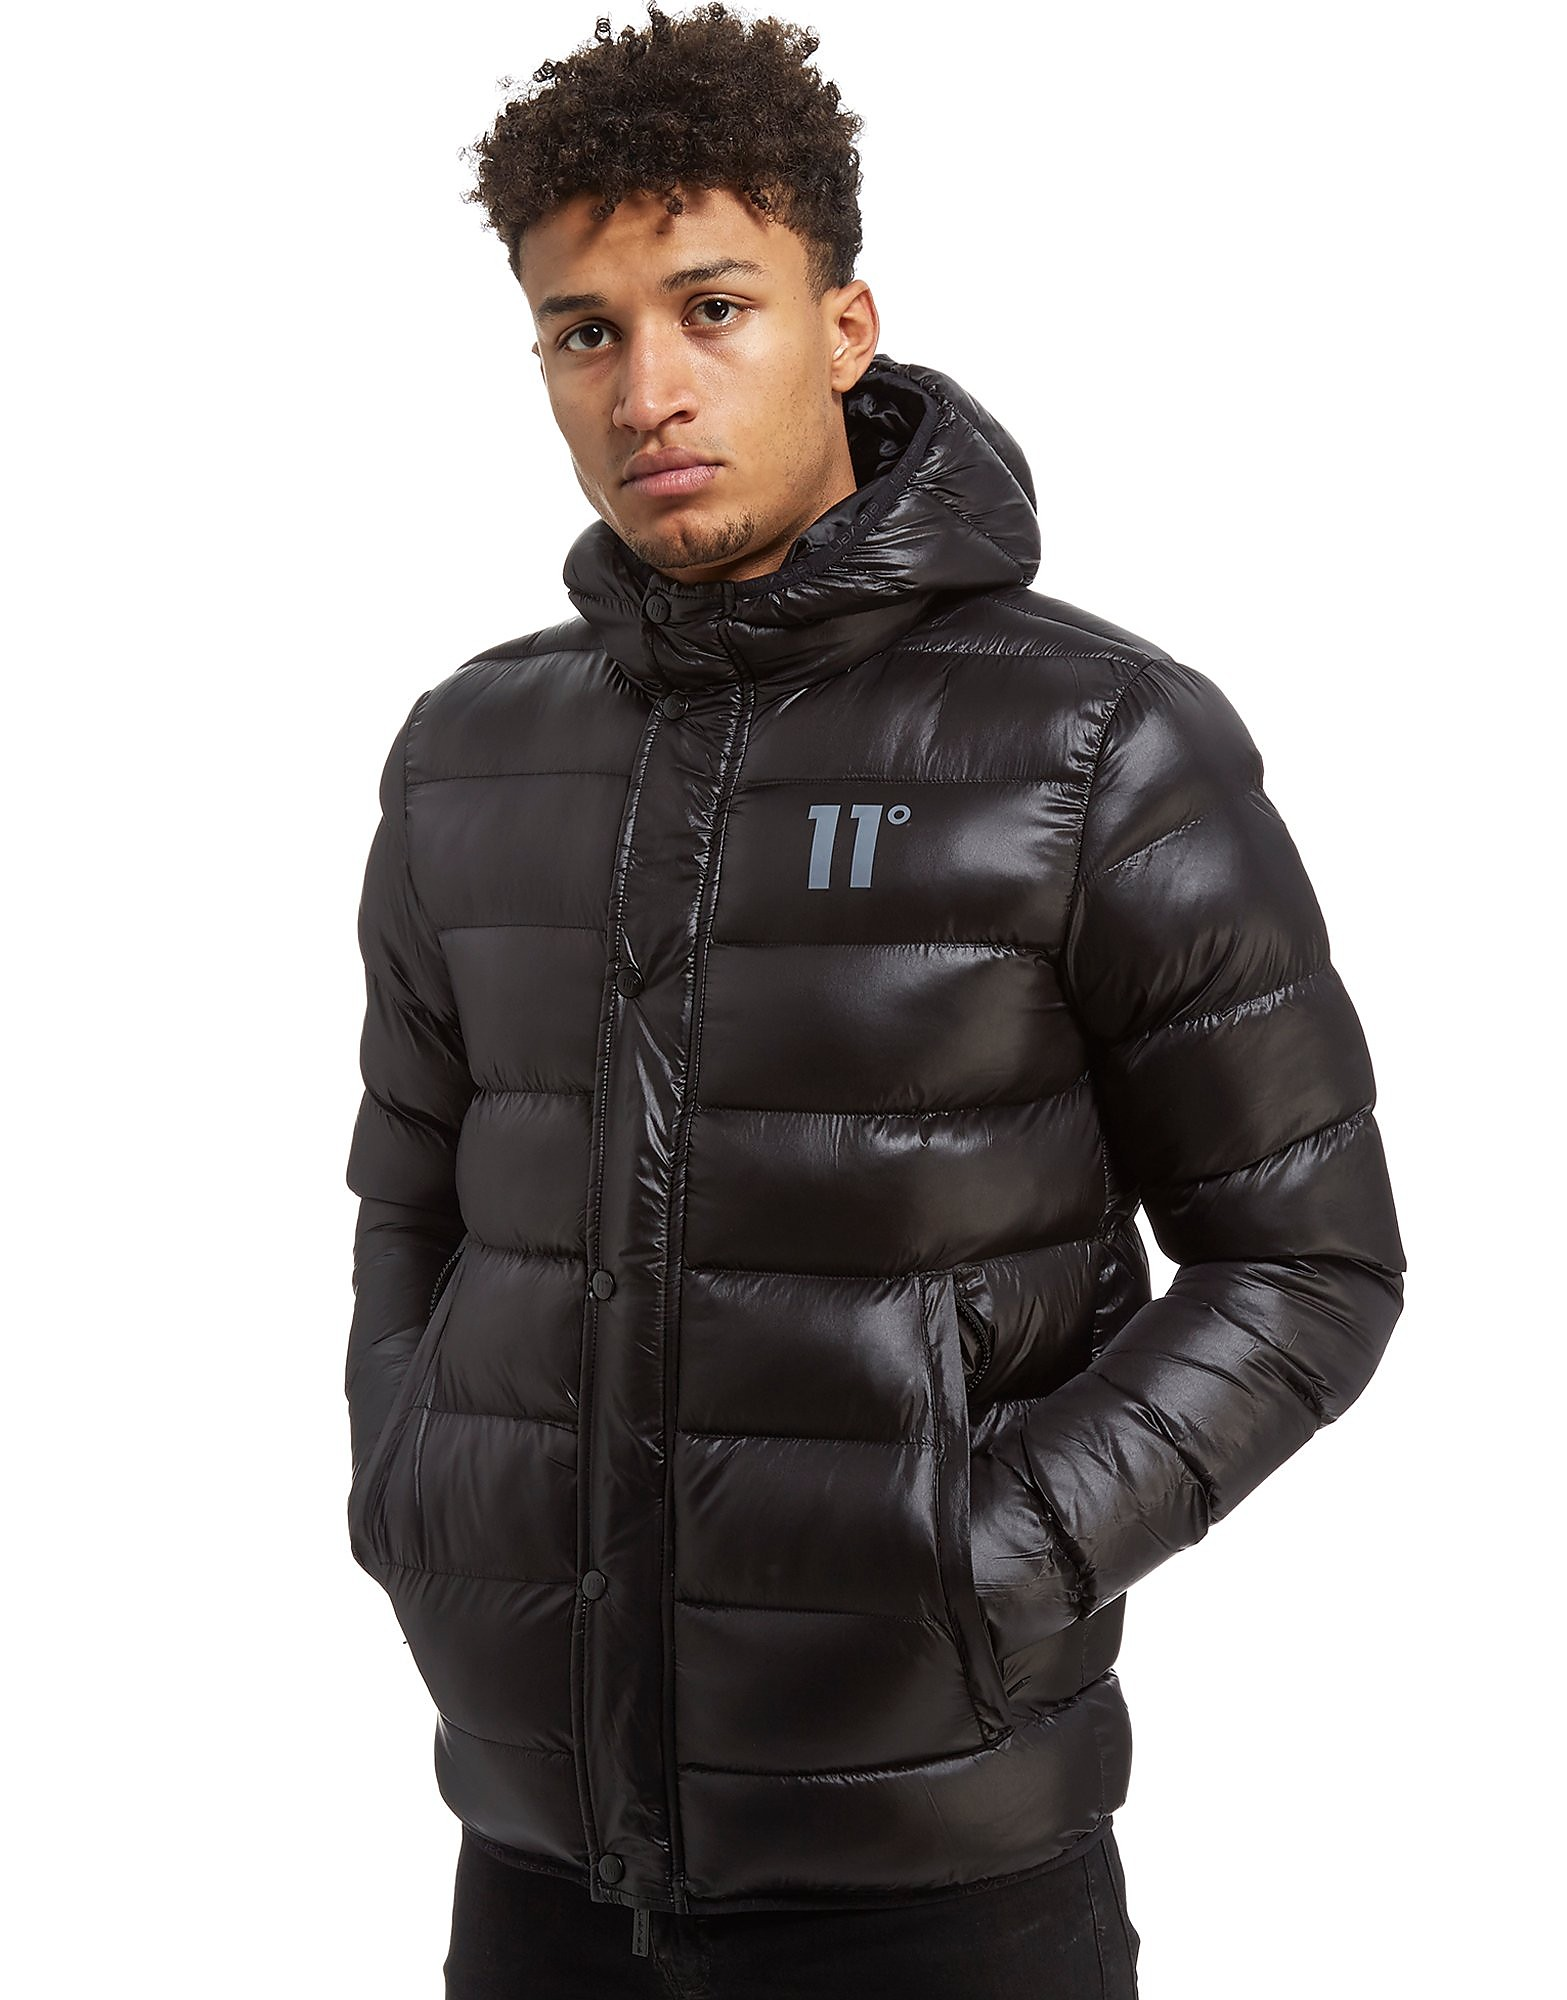 Image de 11 Degrees Veste Strike Padded Homme - Black, Black